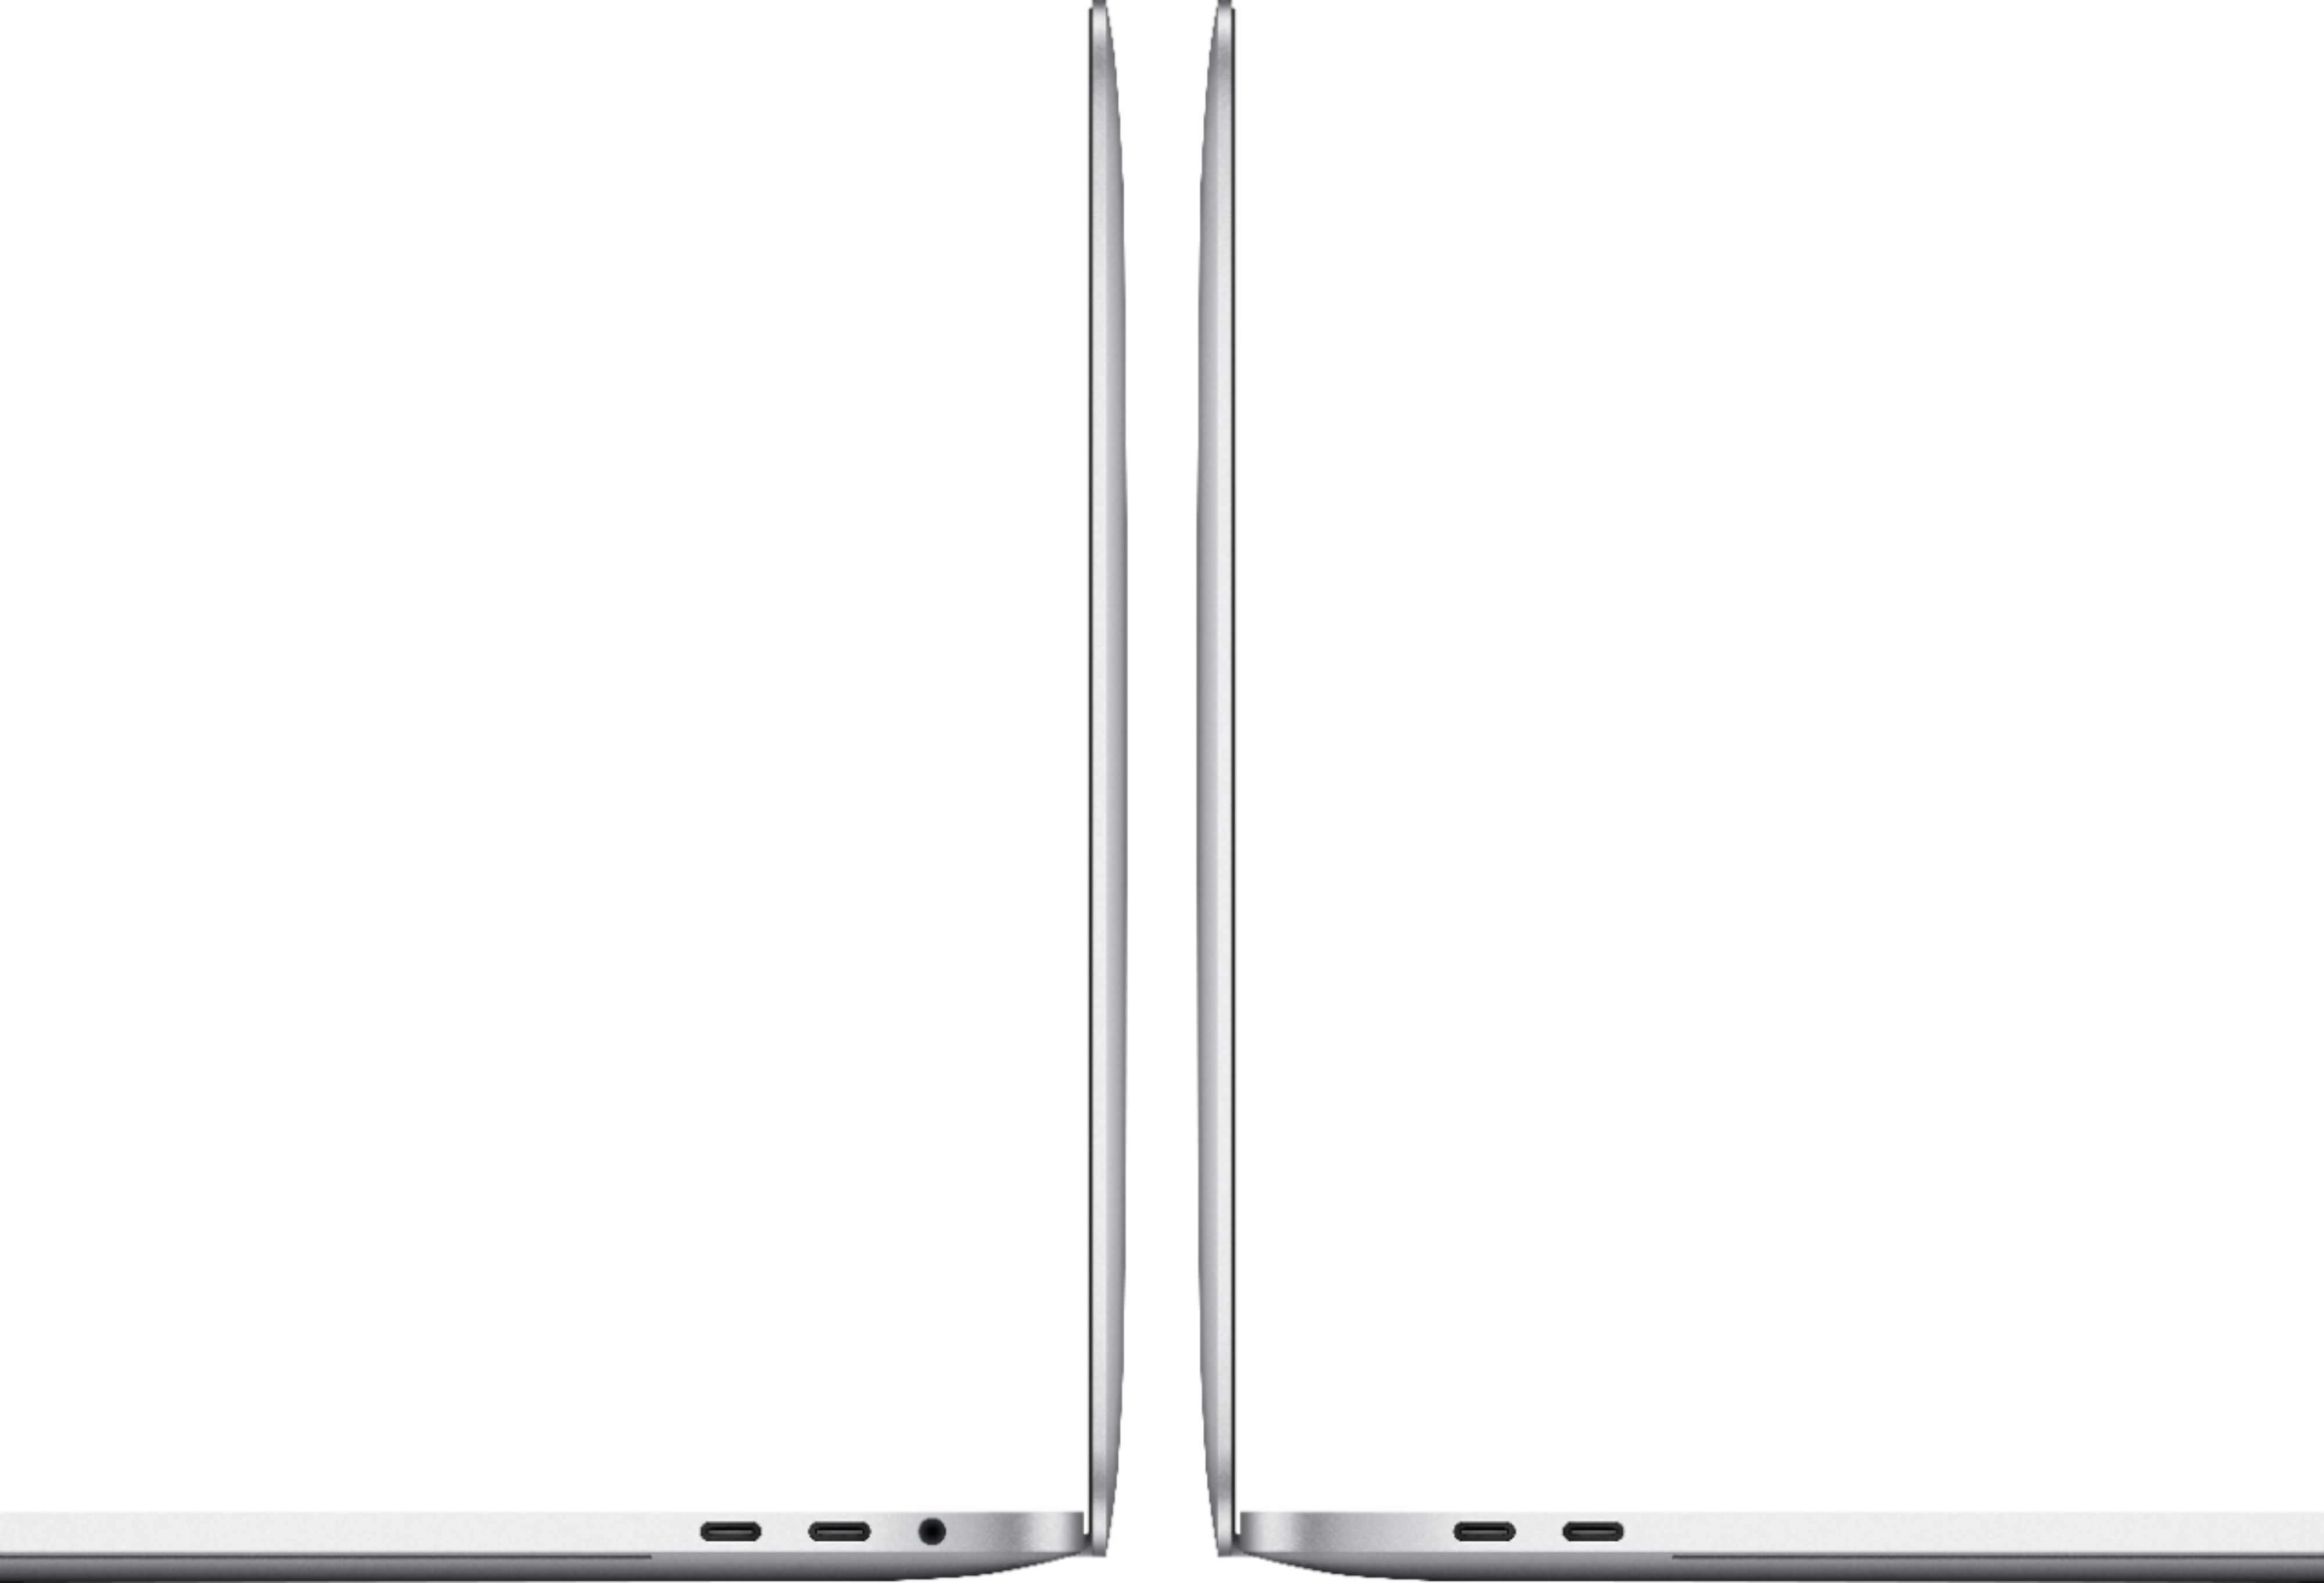 """Alt View Zoom 13. Apple - MacBook Pro - 13"""" Display with Touch Bar - Intel Core i5 - 16GB Memory - 256GB SSD - Silver."""